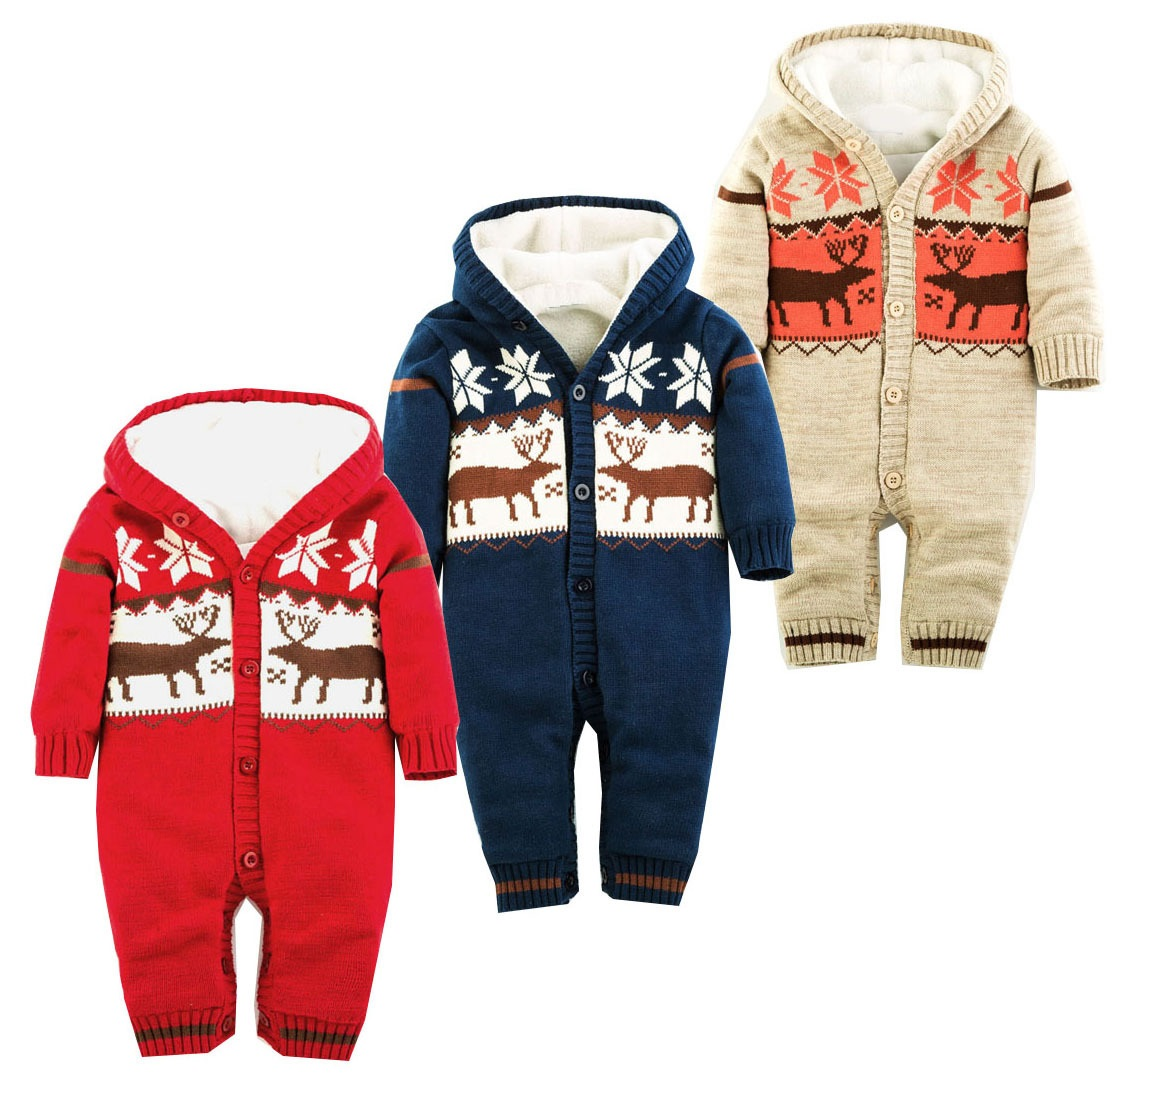 Autumn Winter Baby Romper Christmas Deer Thick Newborn Baby Clothing Hooded Baby Girl Overalls Baby Boys Clothes Infant Costume baby clothes christmas costume for baby infant party dress tutus newborn jumpsuit bebe romper baby girl clothing halloween gift